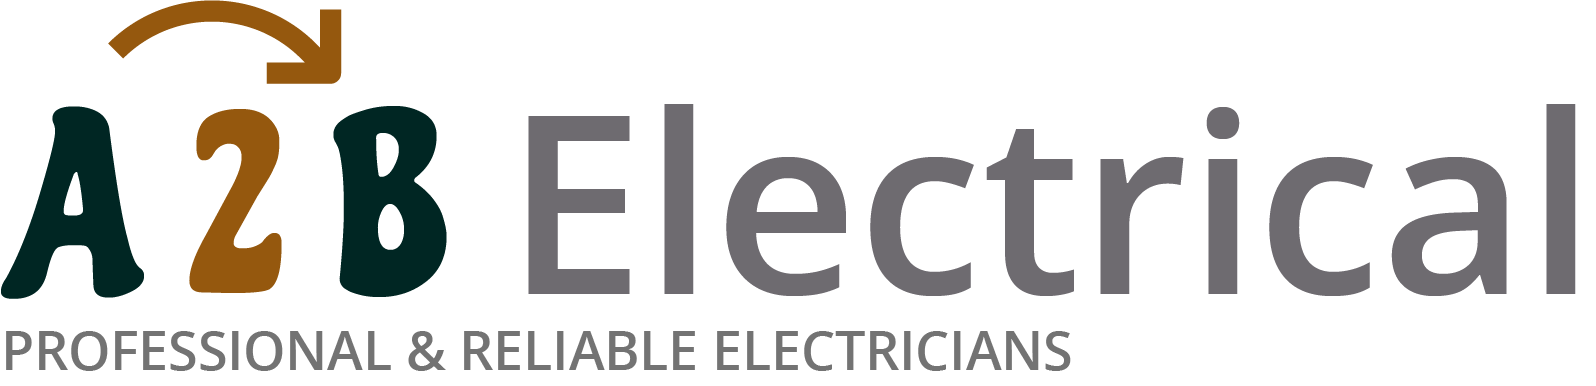 If you have electrical wiring problems in Friern Barnet, we can provide an electrician to have a look for you.